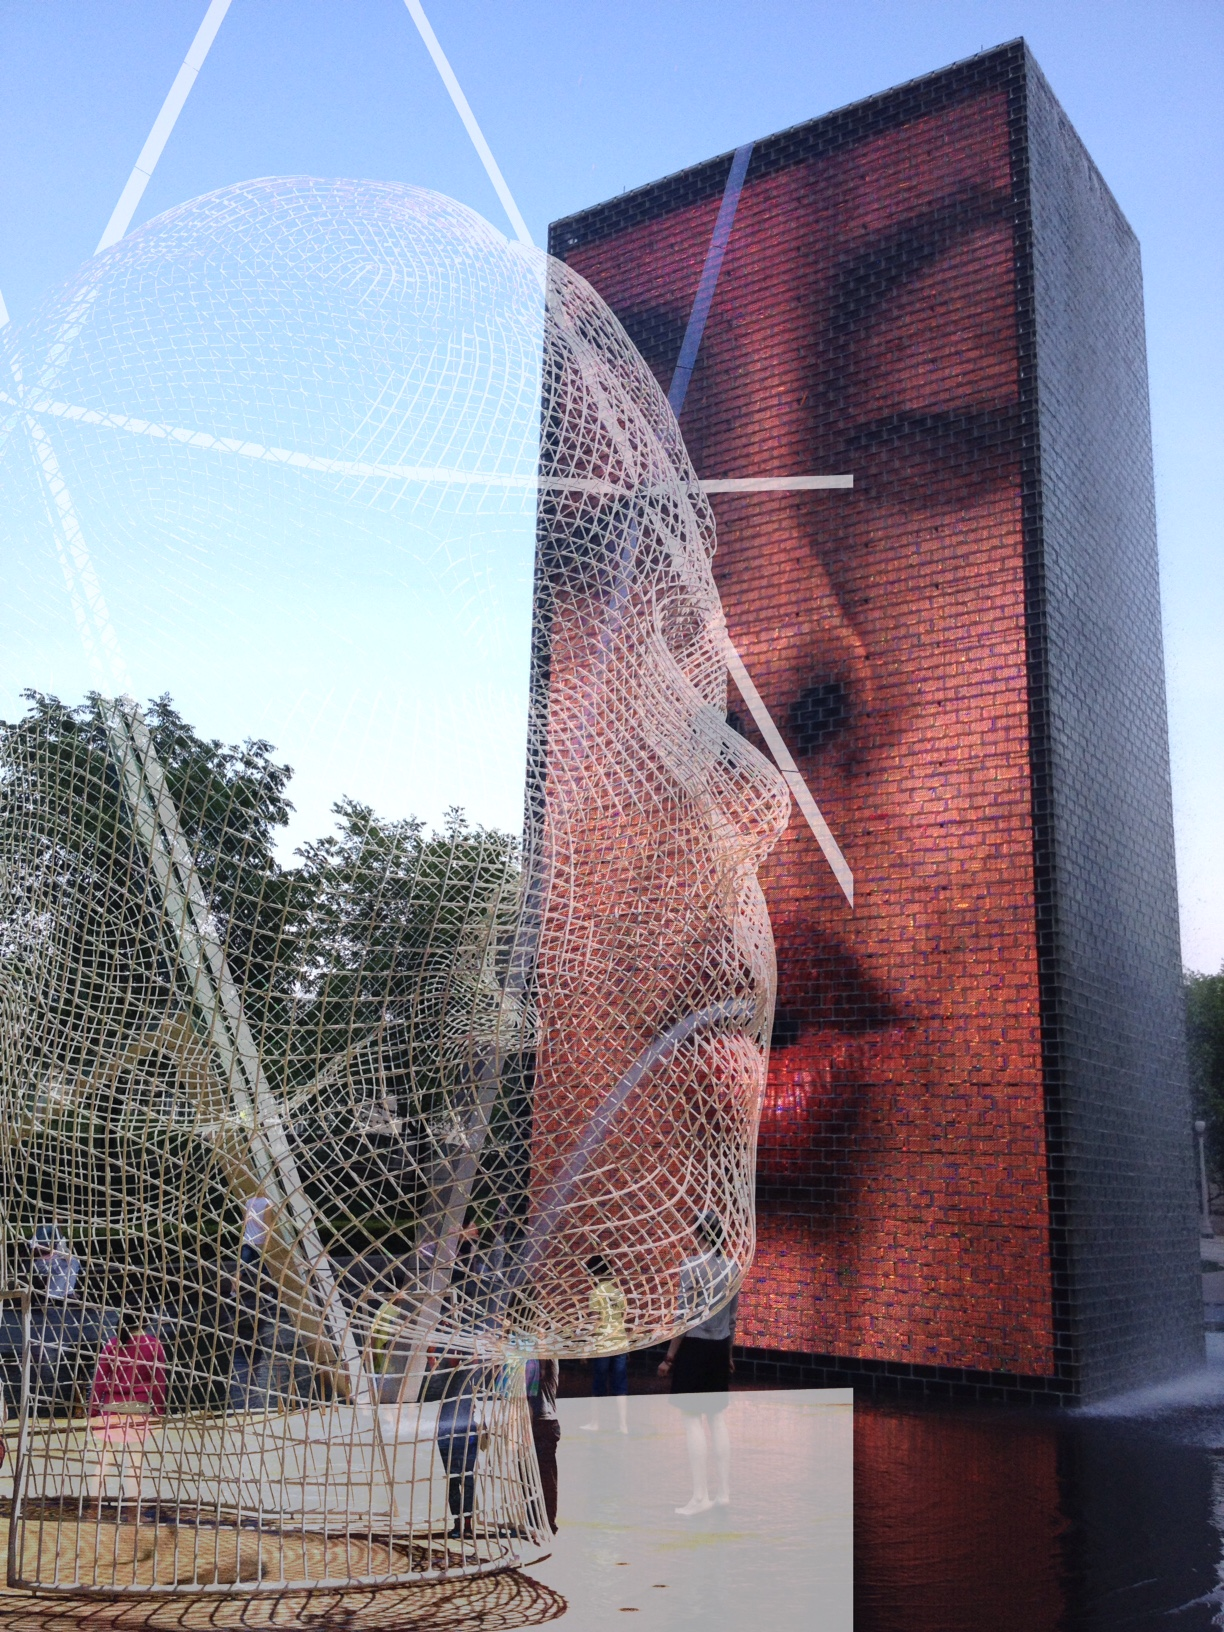 """Jaume Plensa's """"Crown Fountain"""" from Chicago's Millennium Park meets """"Wonderland"""" his public artwork on the plaza in front of Calgary's Bow Tower."""